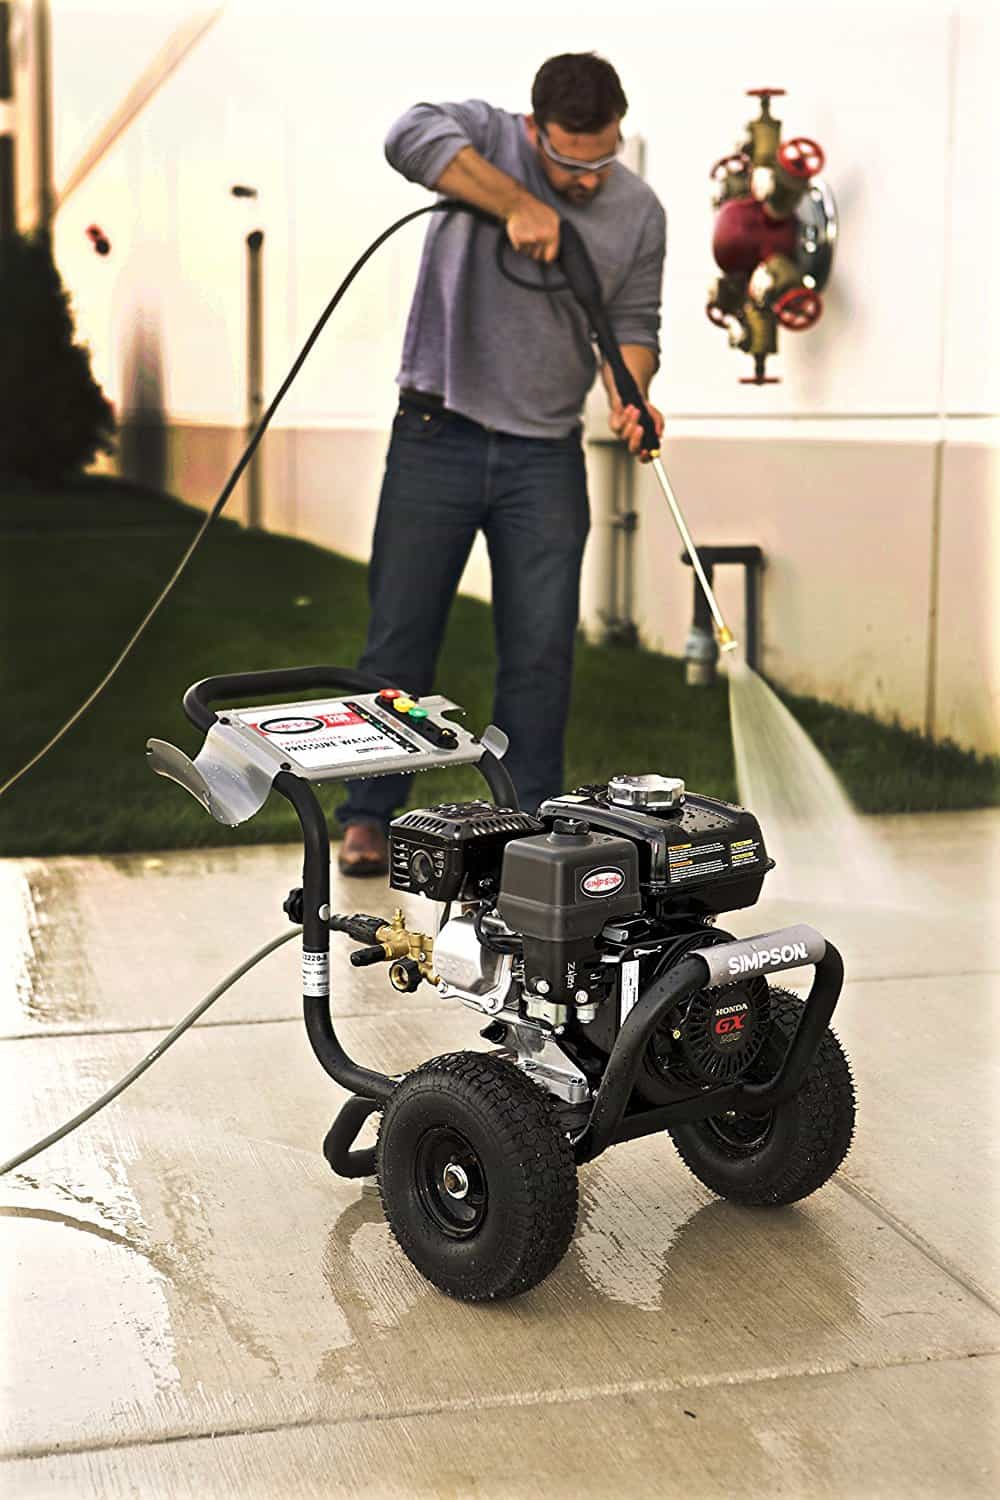 simpson 3200 psi pressure washer reviews